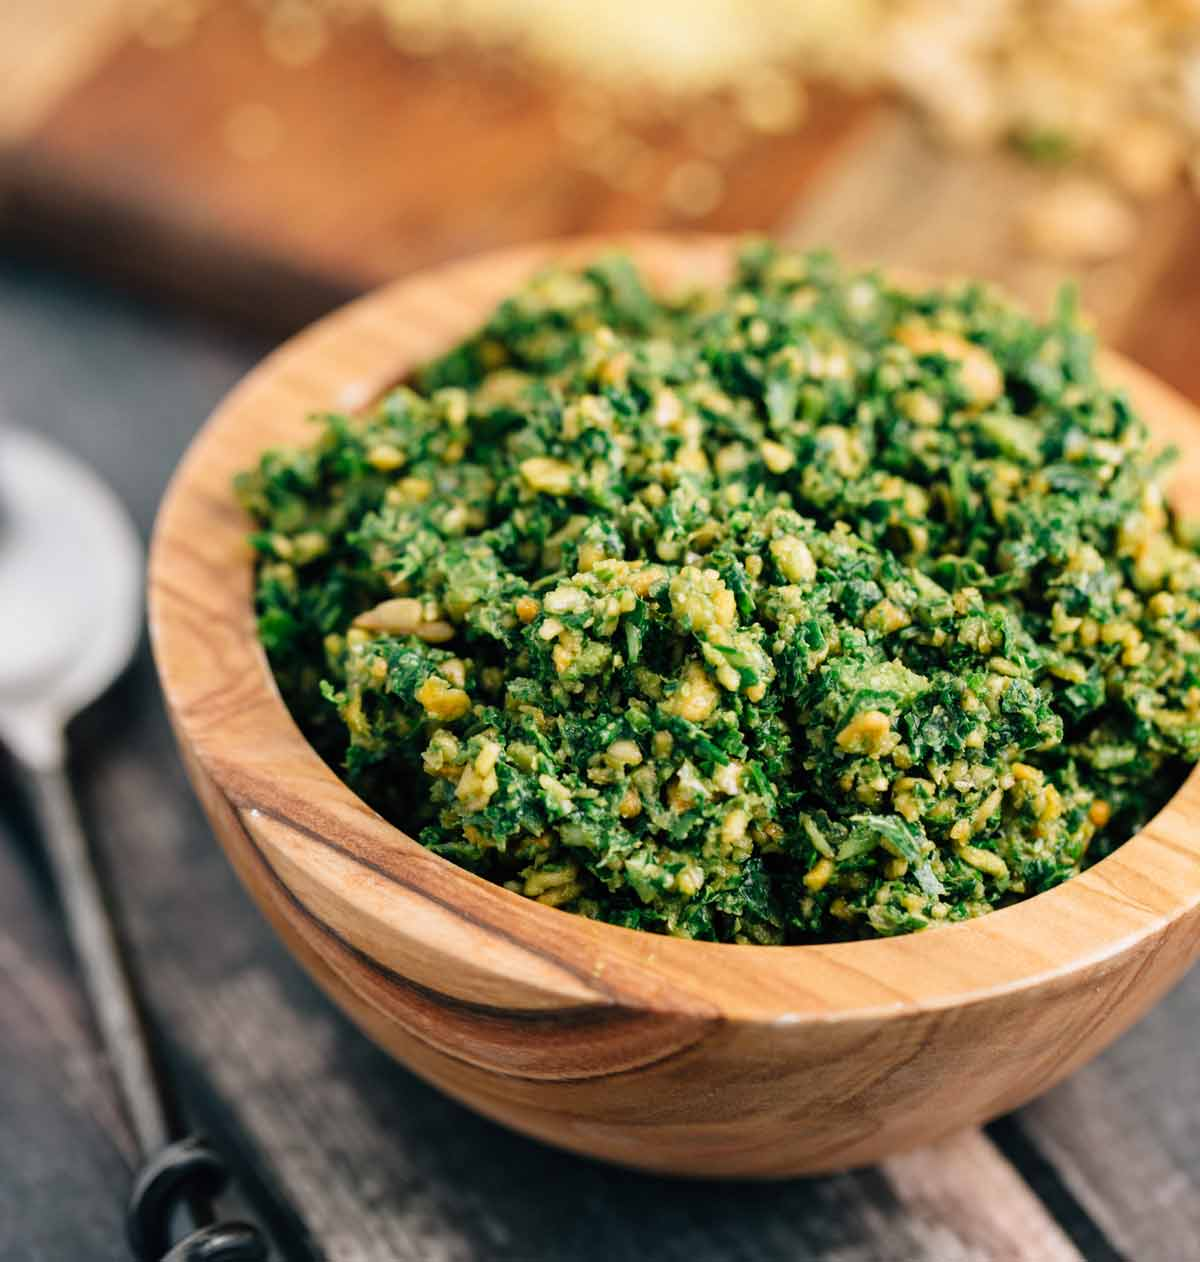 Kale & Sunflower Seed Pesto (Vegan, Gluten Free)